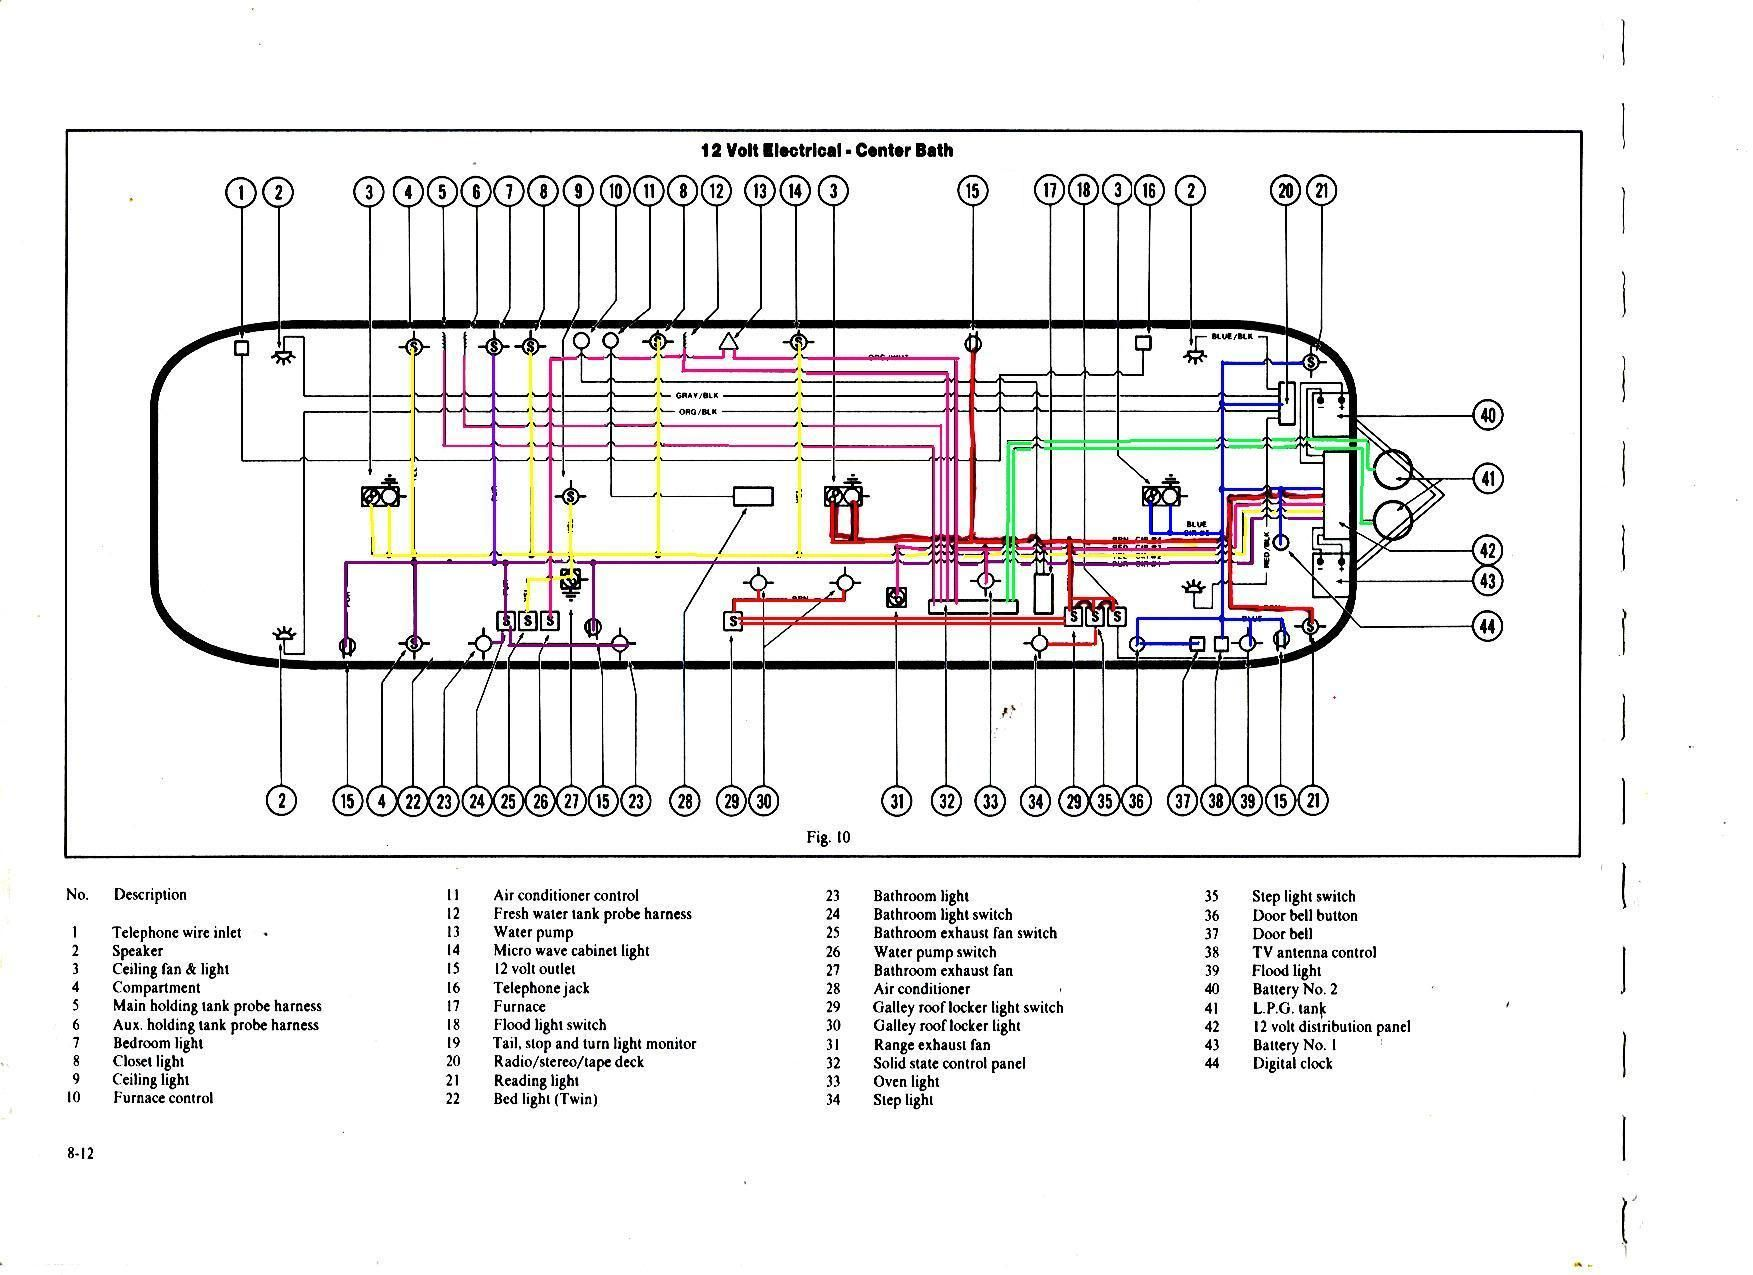 Electrical Diagrams Electrical Diagram Airstream Trailers Airstream Travel Trailers